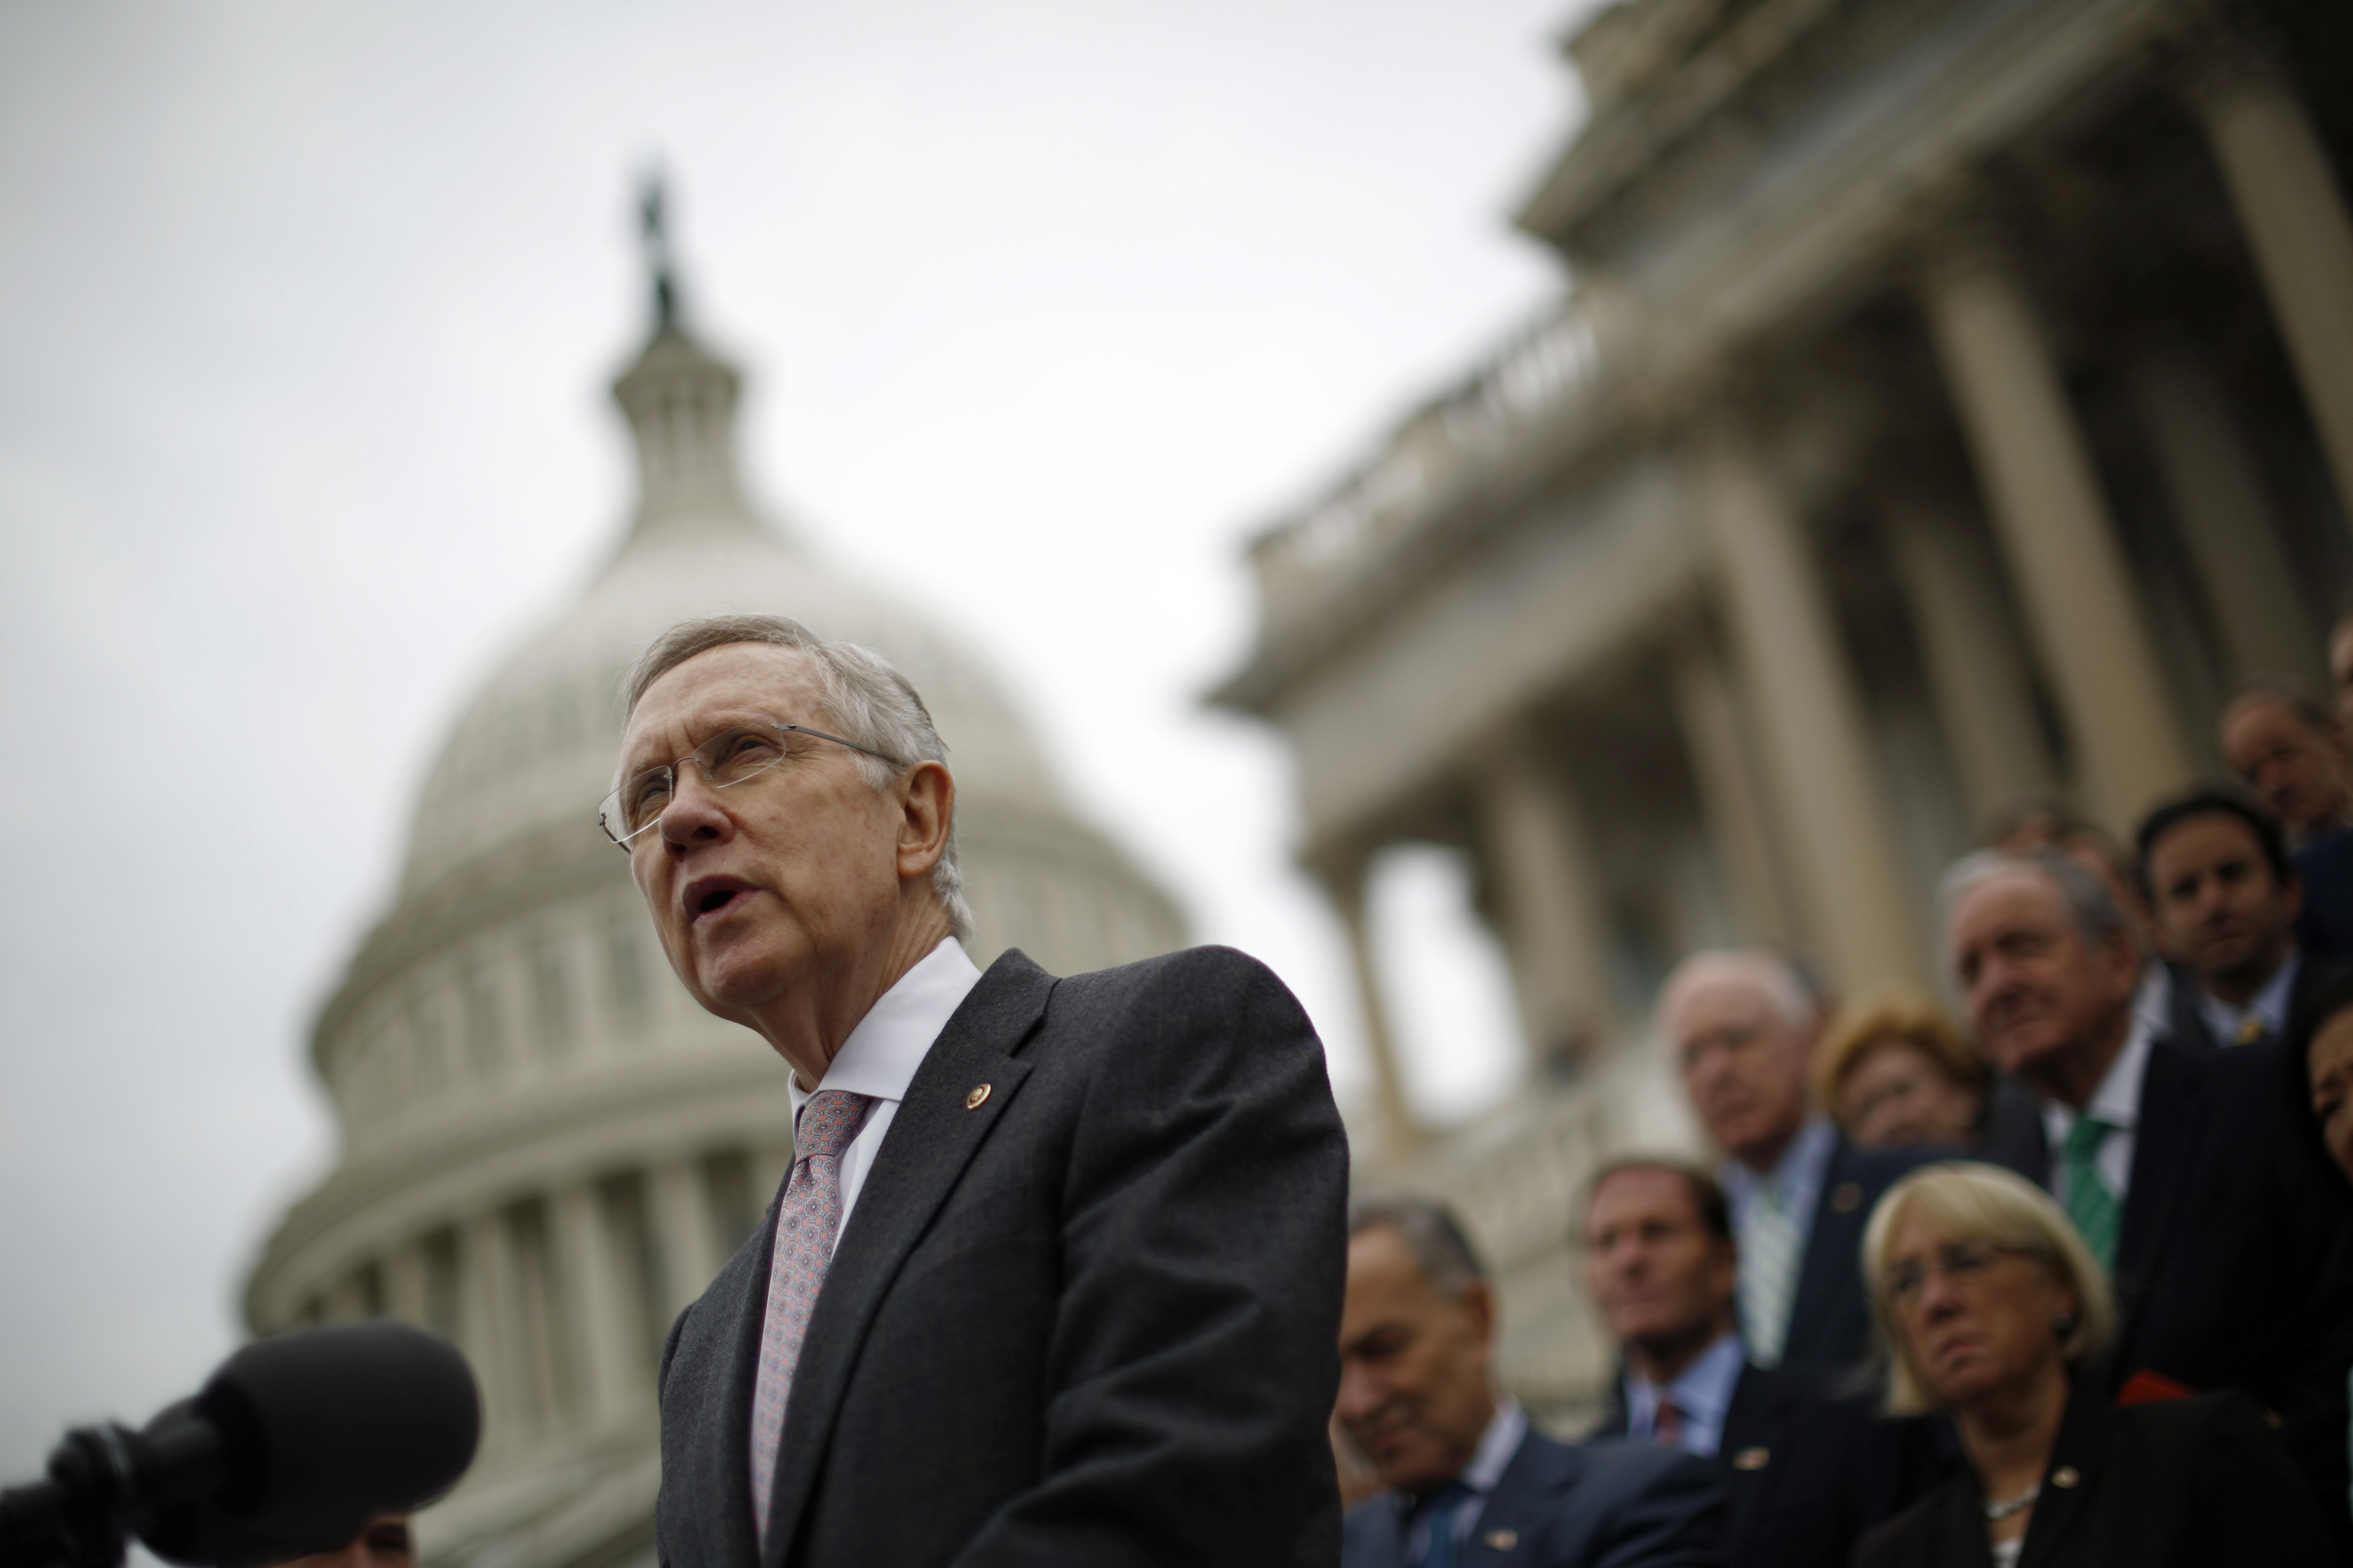 FILE - U.S. Senate Majority Leader Harry Reid, with other Democratic Party Senate members in the background, is seen on the steps of the U.S. Capitol in Washington, D.C.